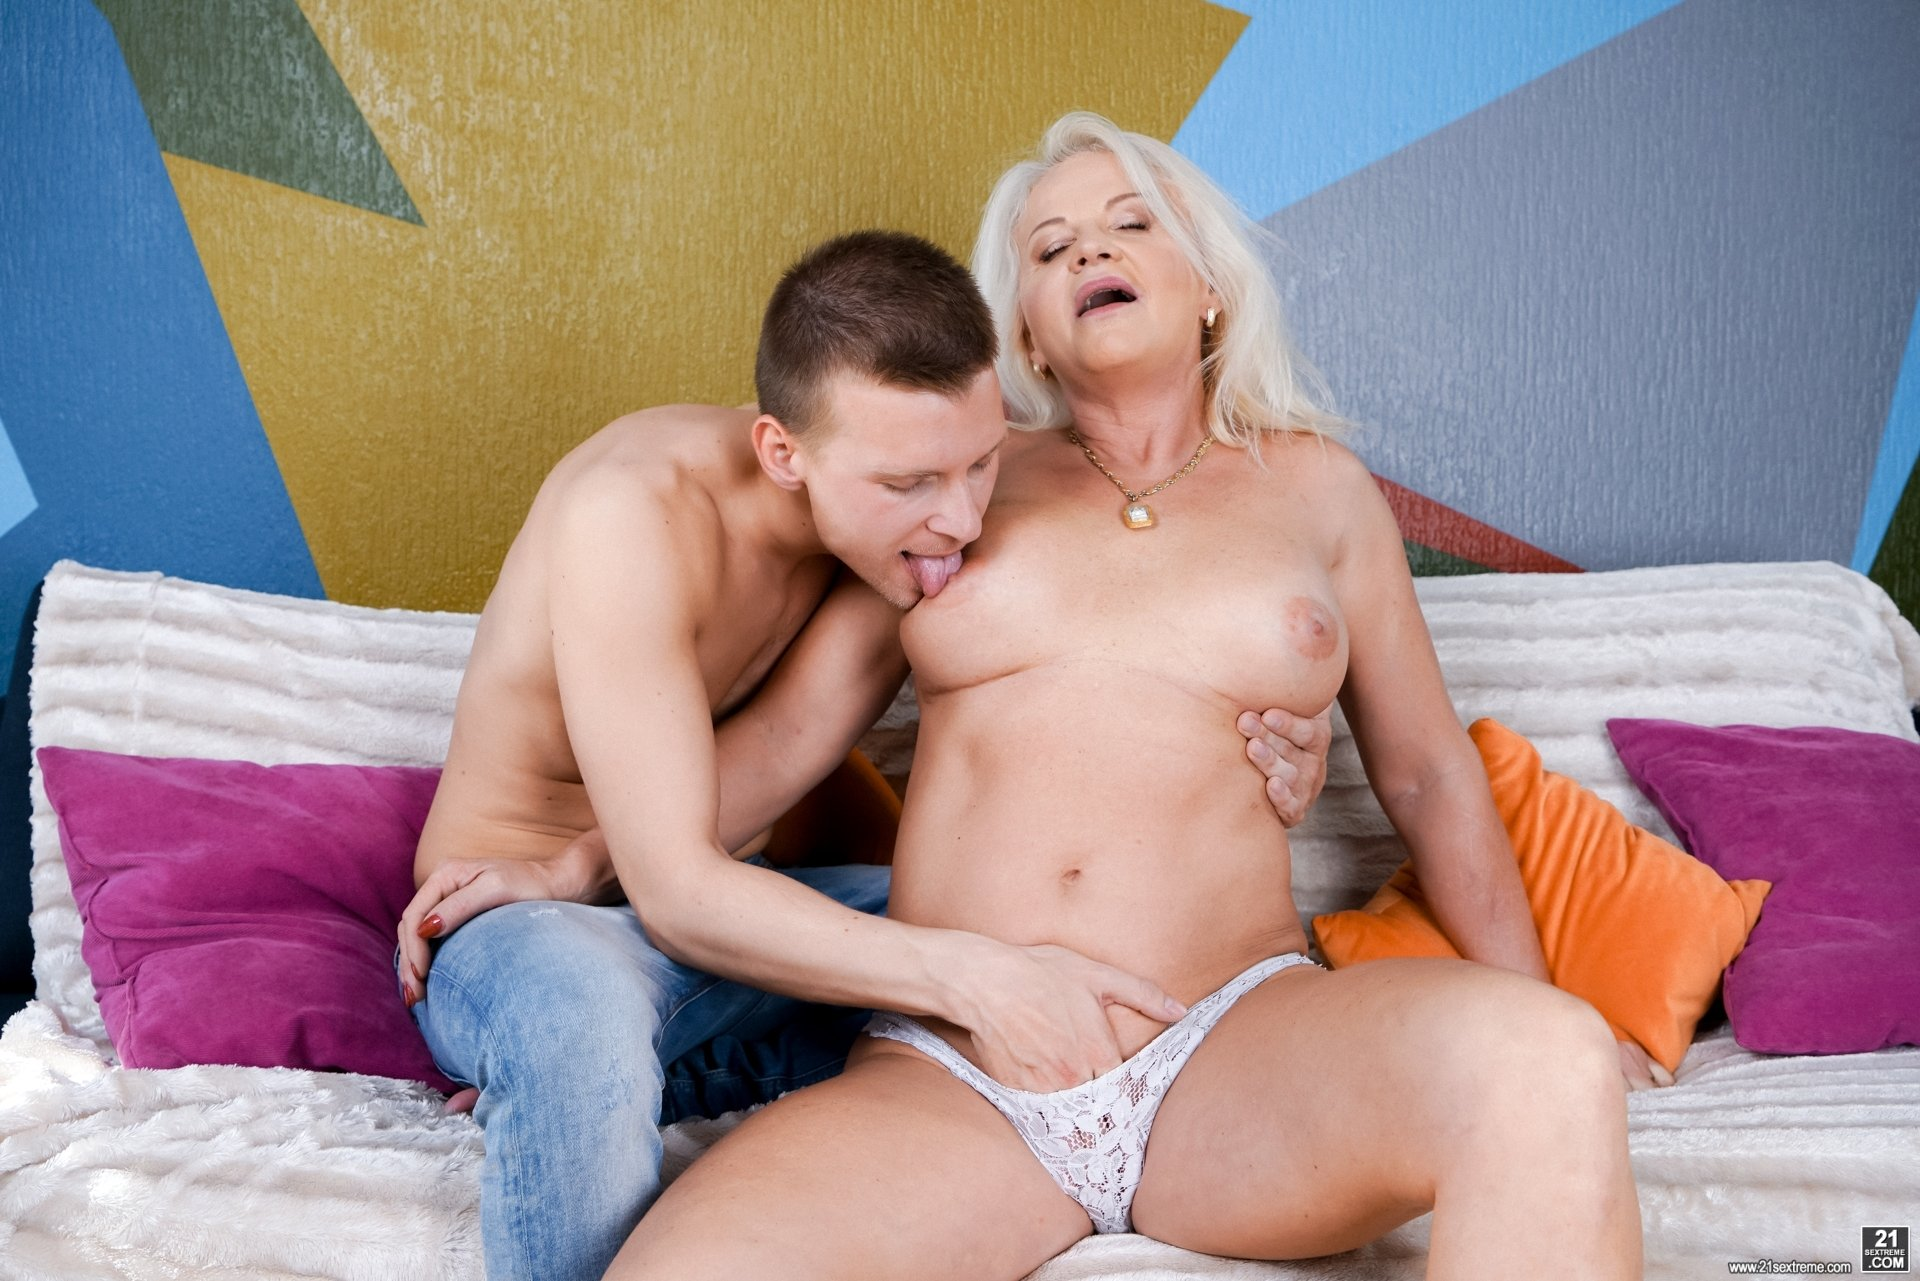 Mature granny boobs Amateur free bestiality Privat clup